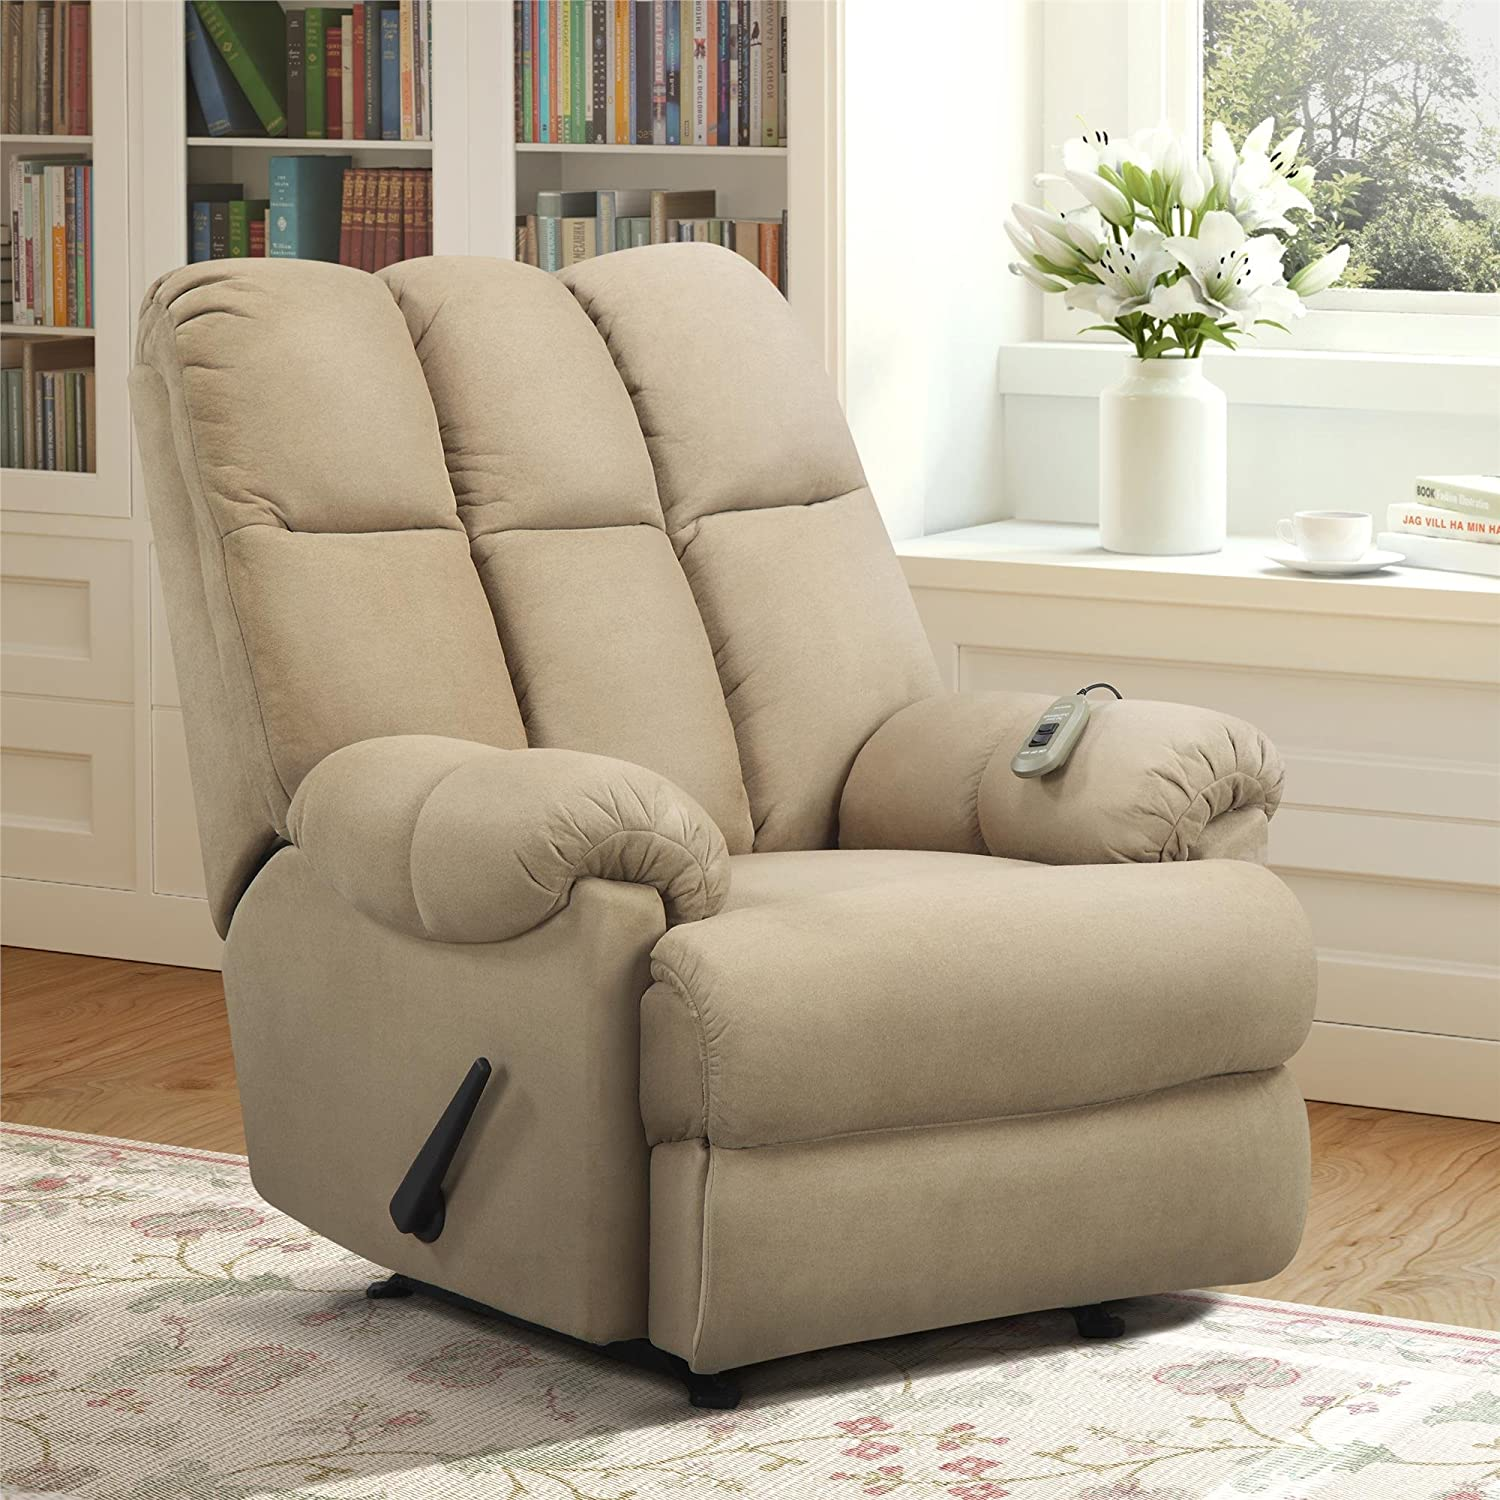 reviews chair rated uk best foxhunter chairs recliner bonded cinema leather in massage